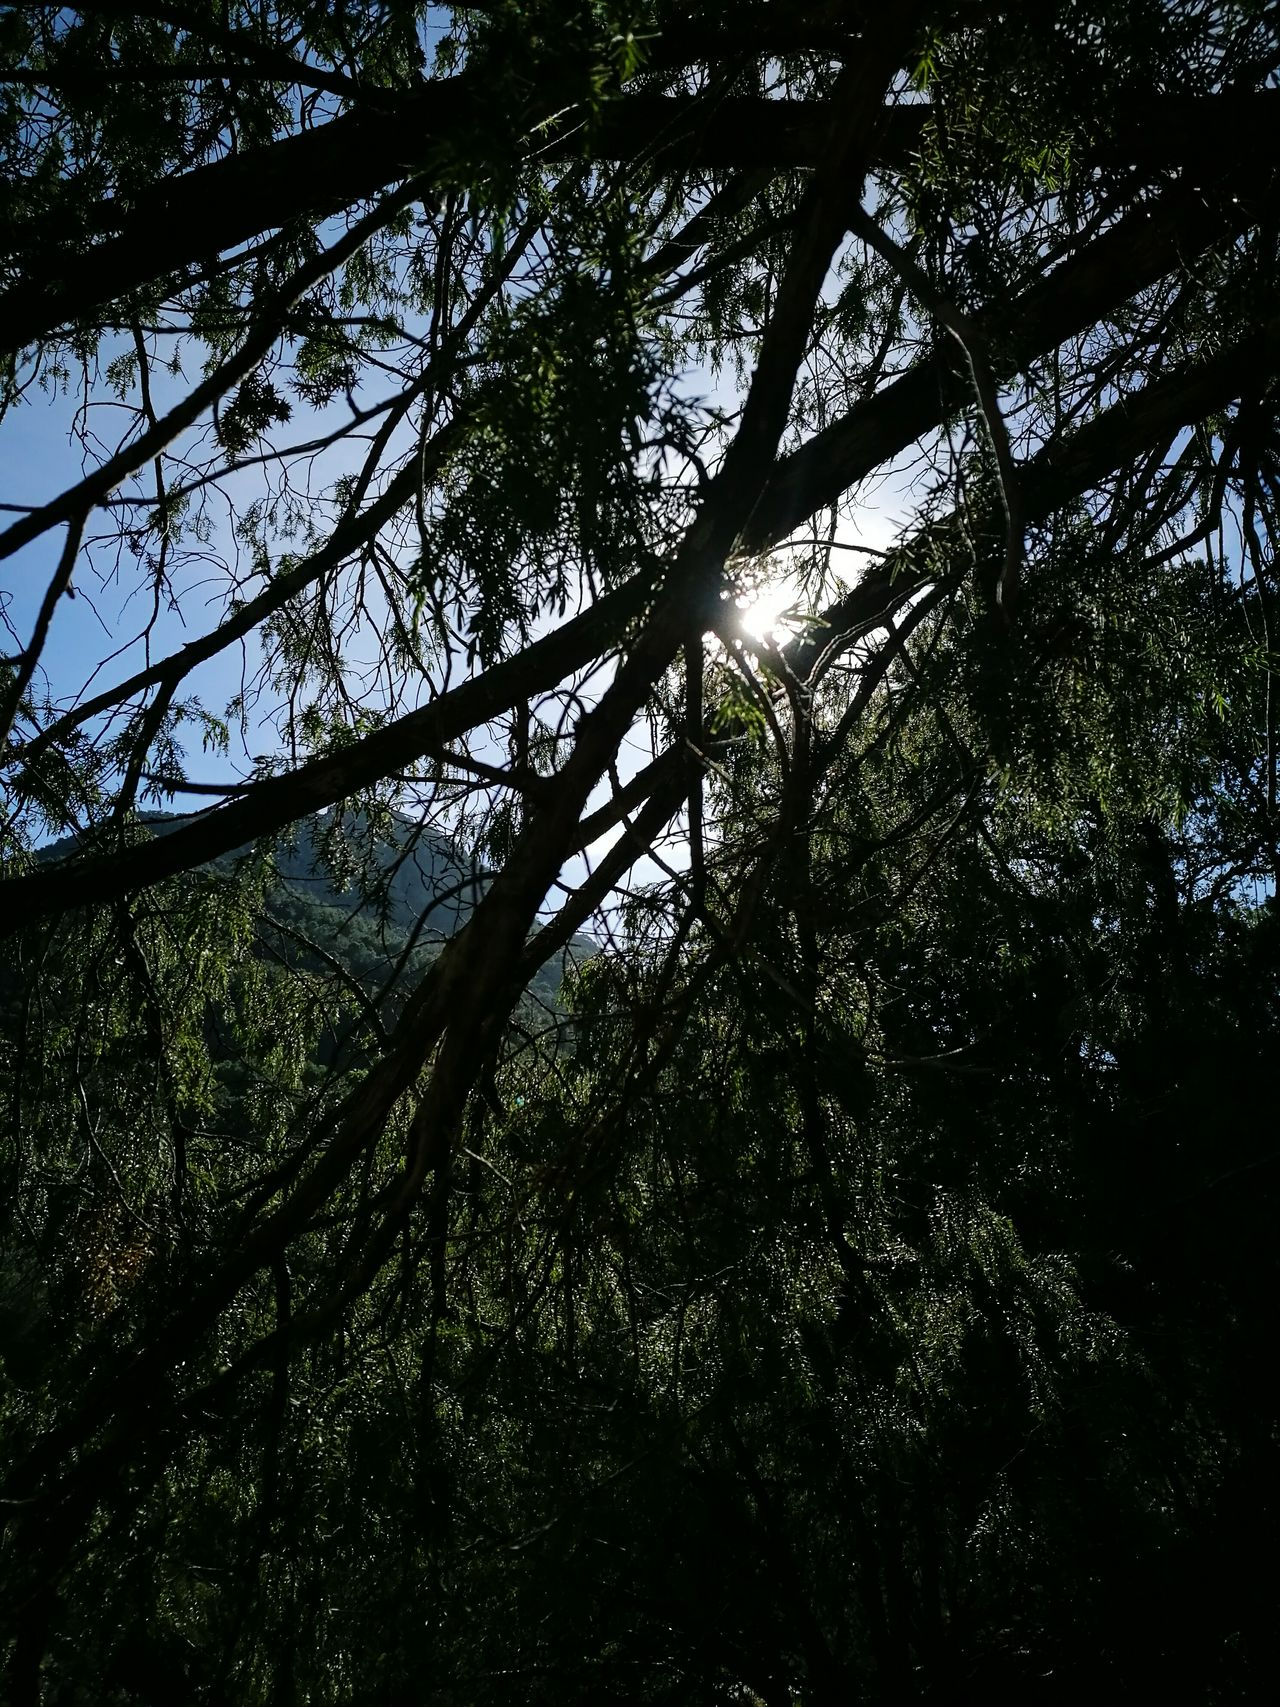 Live Day Outdoors Tranquility Tree Canopy  Nature Tree Trough The Trees Relaxing Time Sky Light Scape